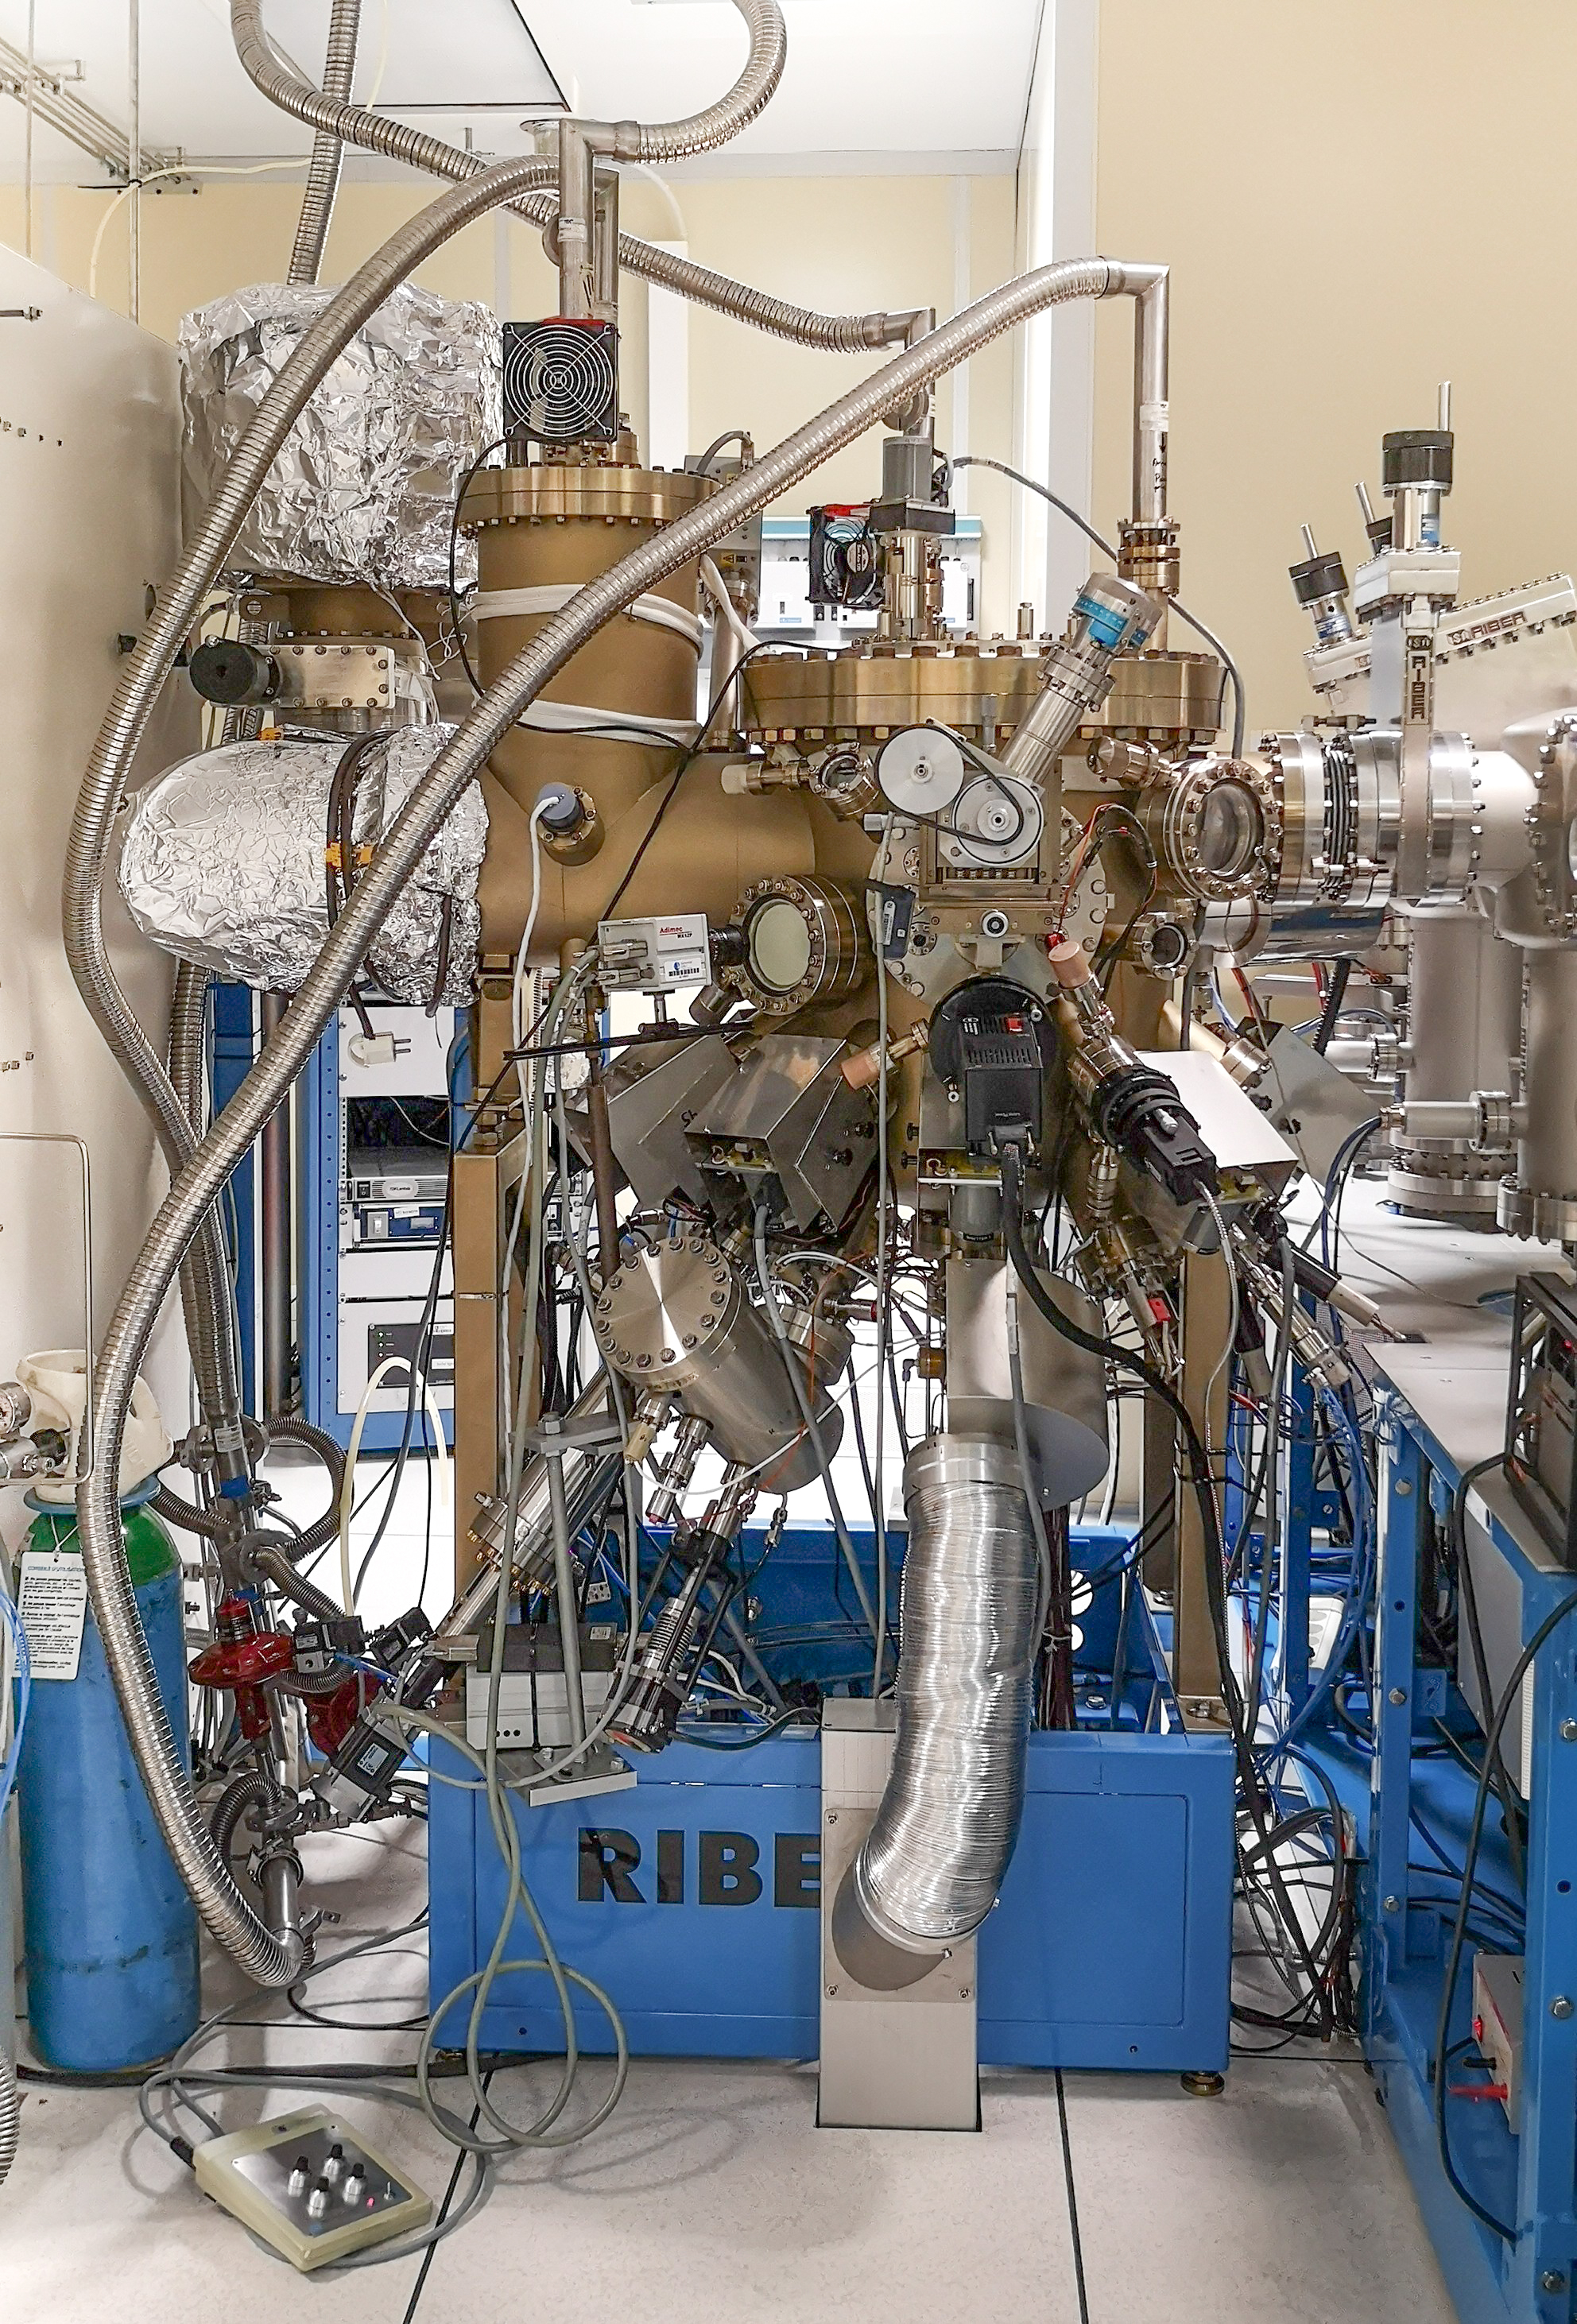 III-V MBE Riber compact 21 reactor, view from the manipulator side